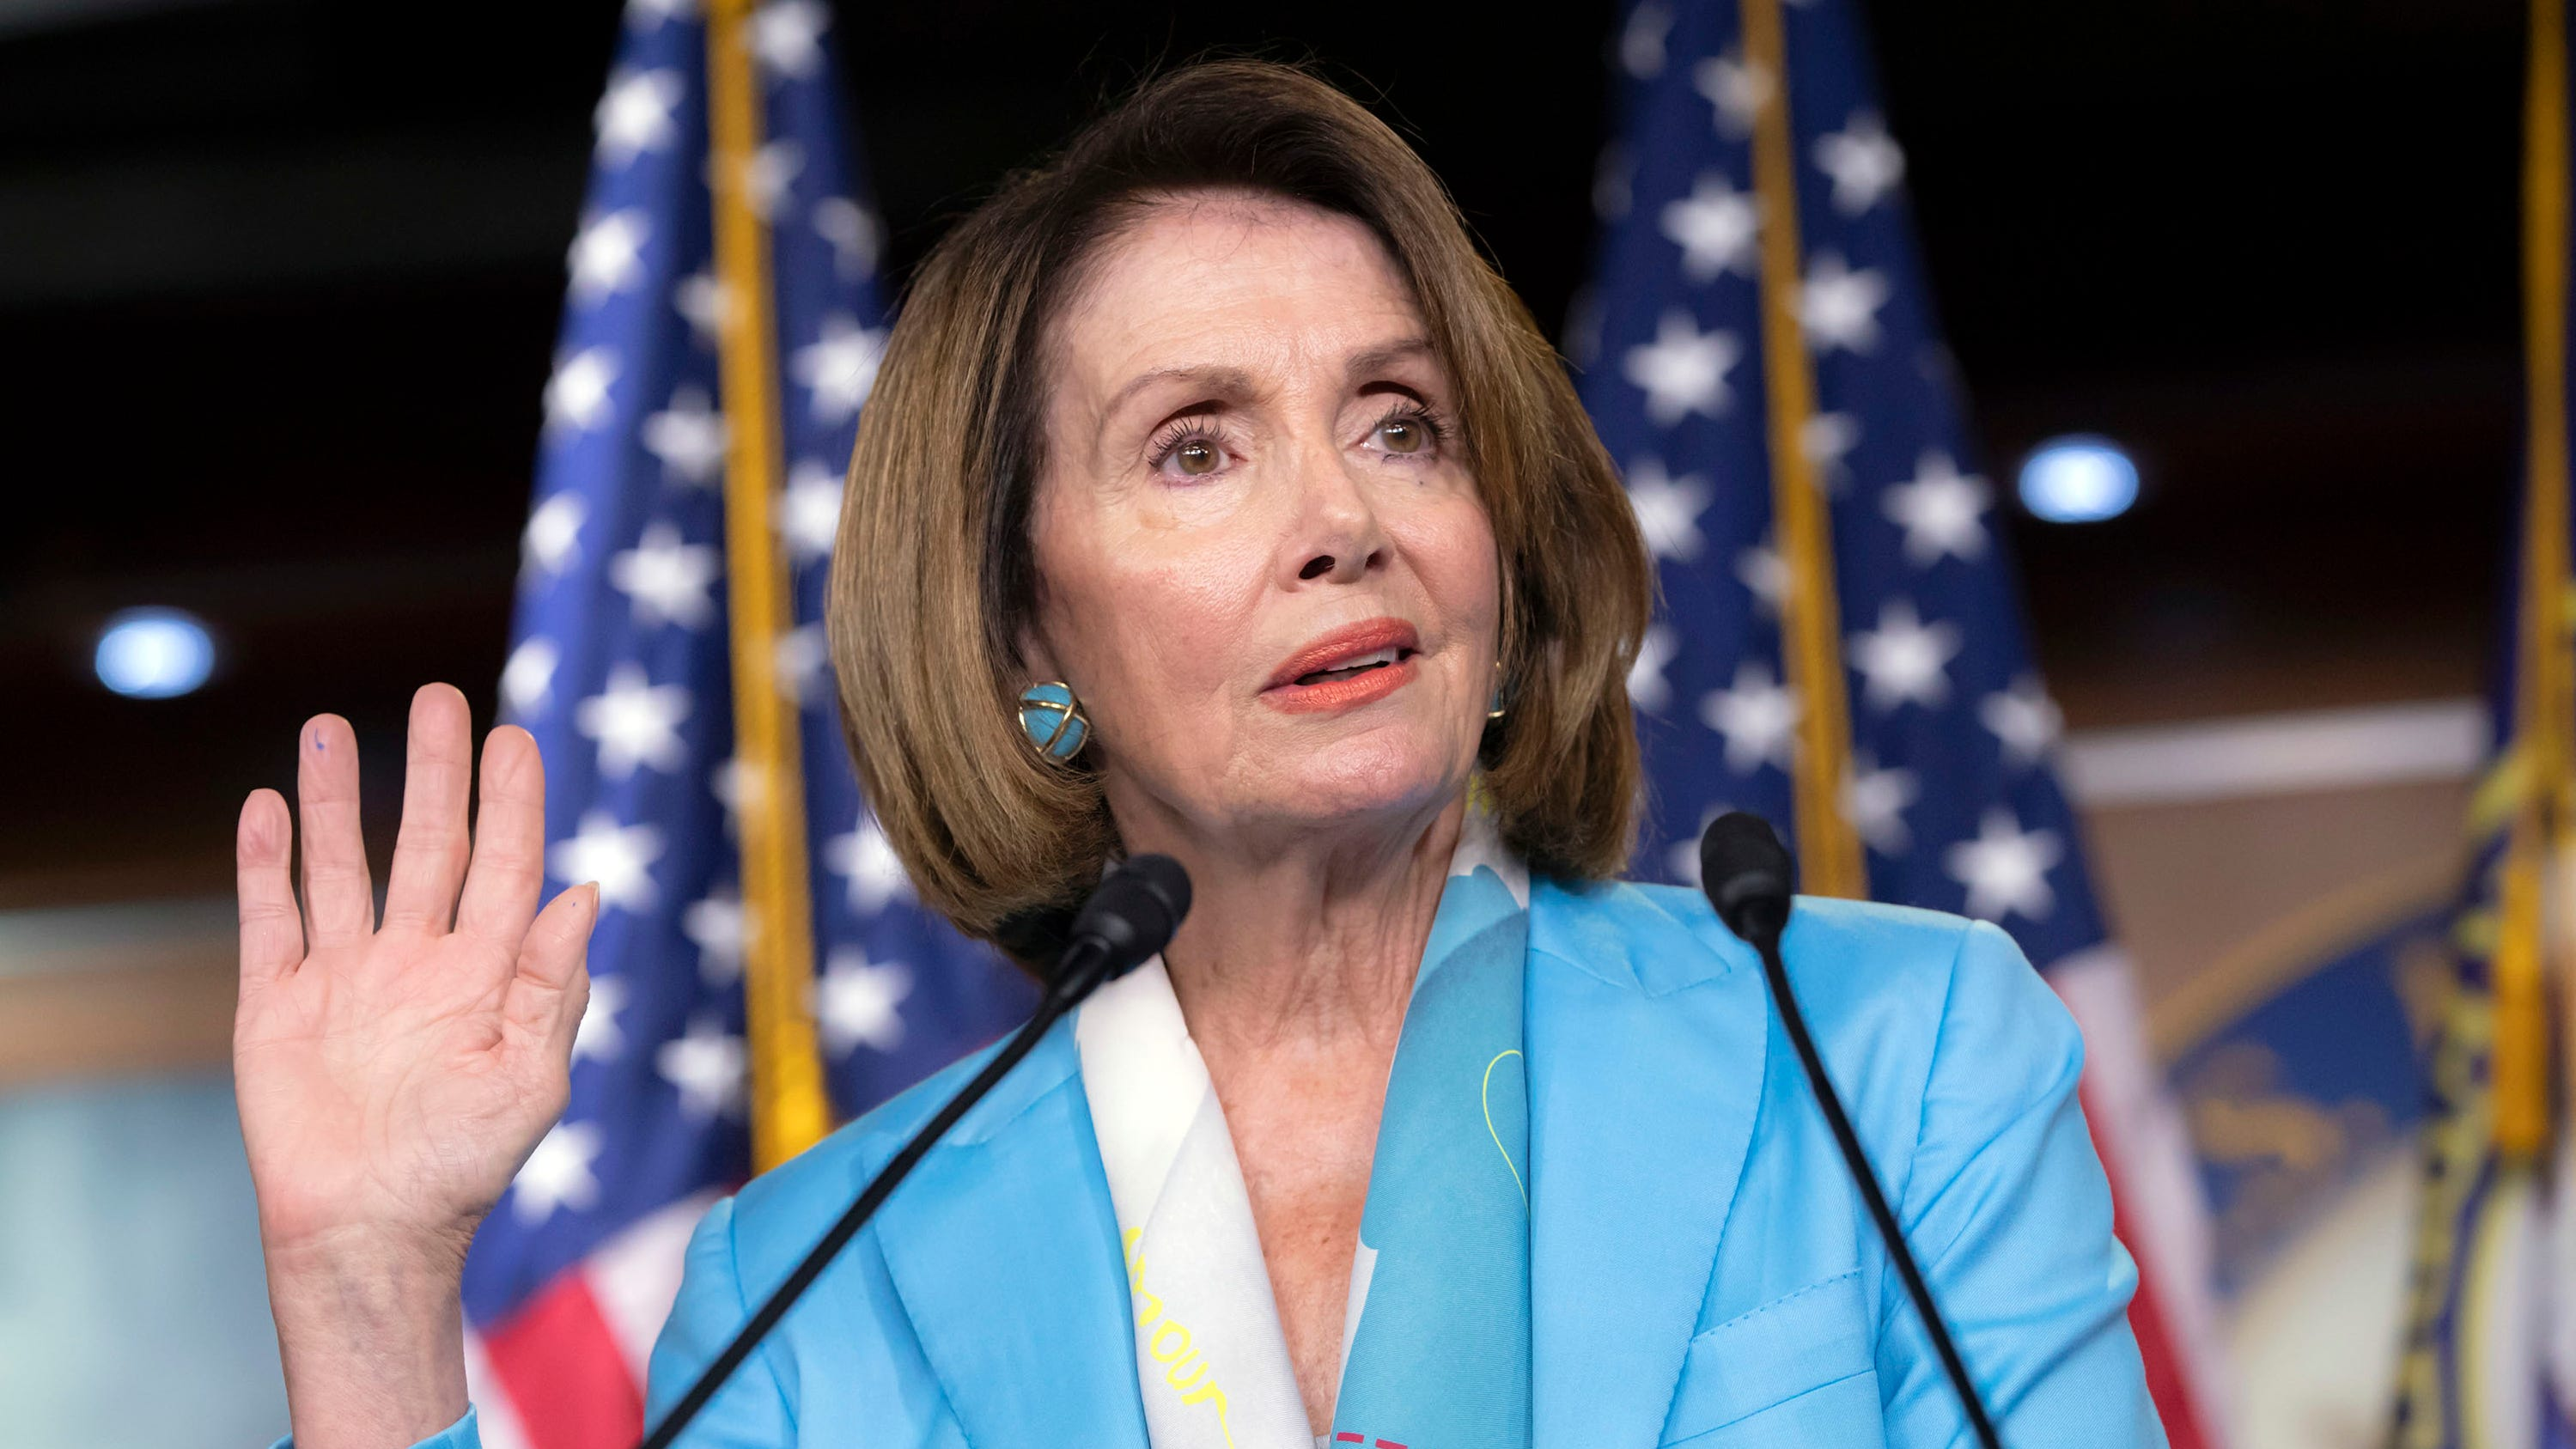 What would Trump and Republicans run on if they didn't have Pelosi? She should say she'll leave leadership in 2019, then campaign like heck for Democrats.